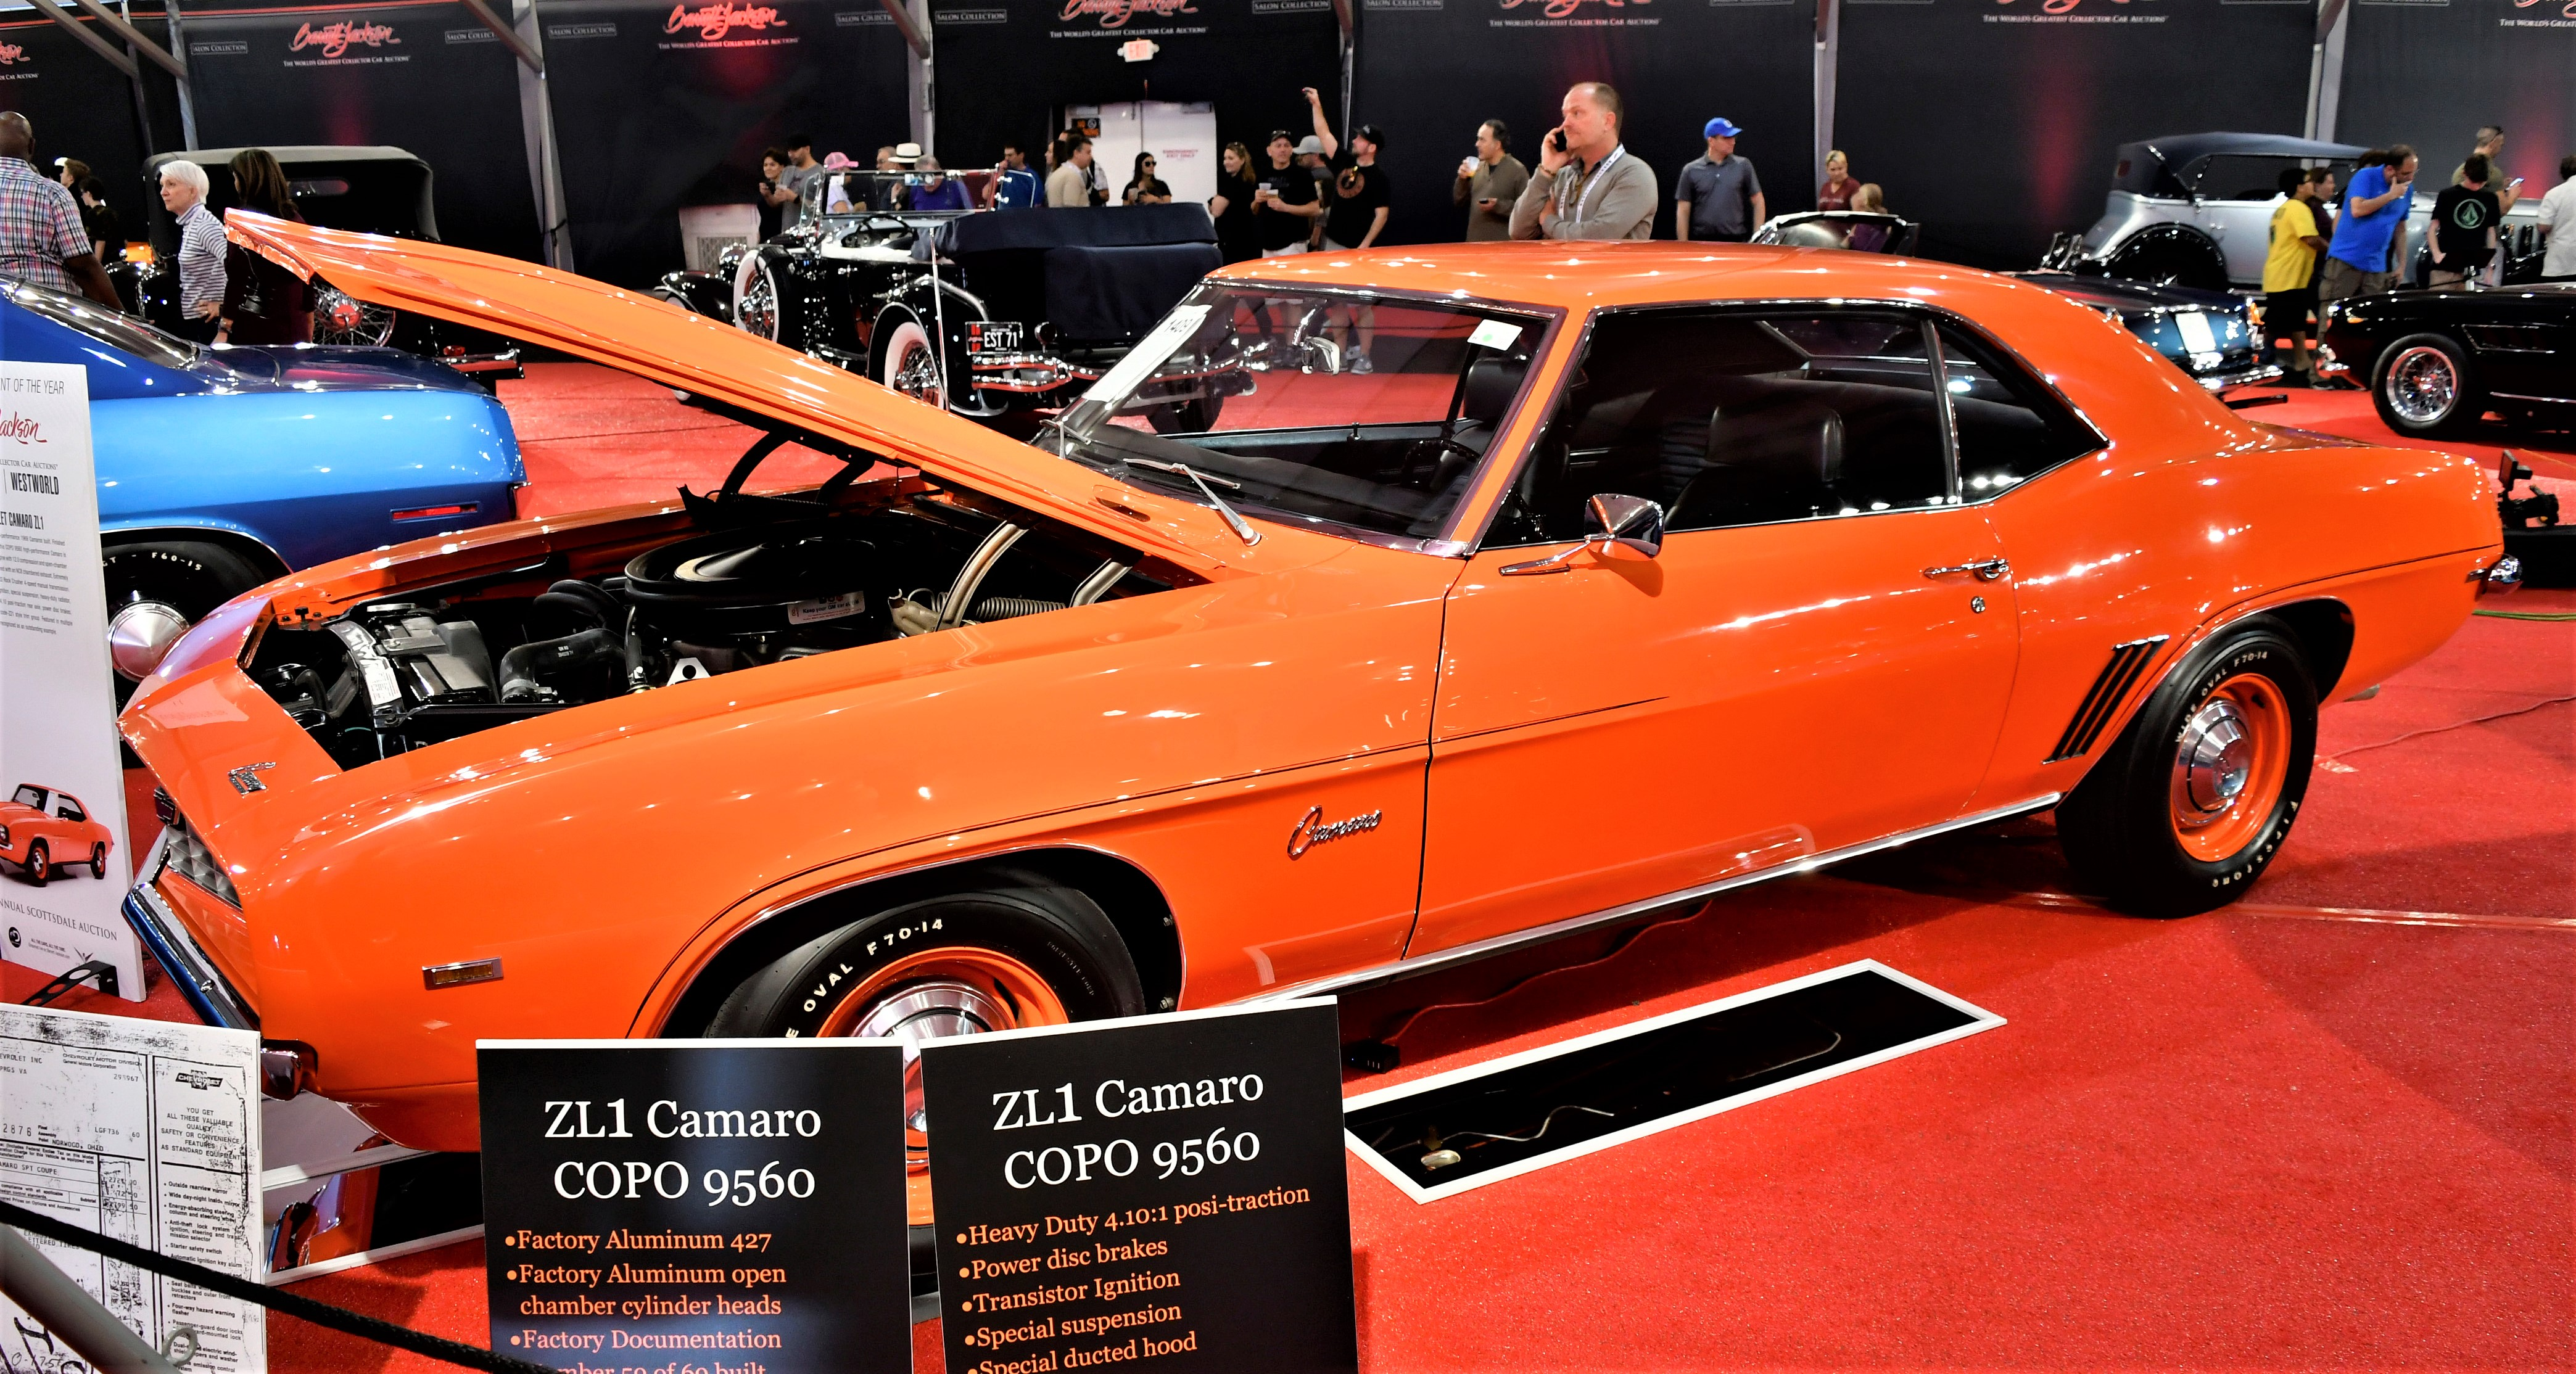 , Top-dog muscle cars ready for action at Barrett-Jackson in Scottsdale, ClassicCars.com Journal